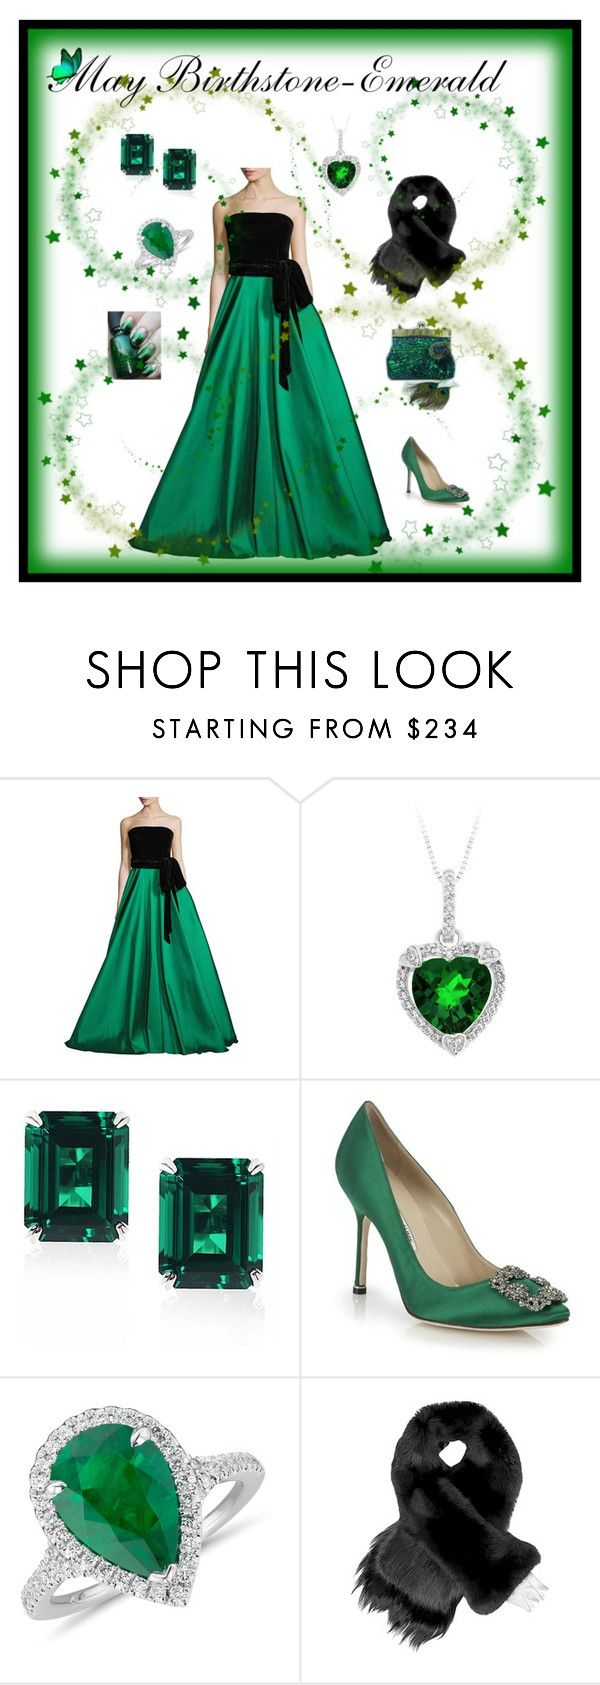 """May Birthstone - Emerald"" by glassdreamshawaii ❤ liked on Polyvore featuring NOIR Sachin + Babi, CARAT* London, Manolo Blahnik, Blue Nile, Fearfur, GREEN, emeralds and MayBirthstone"